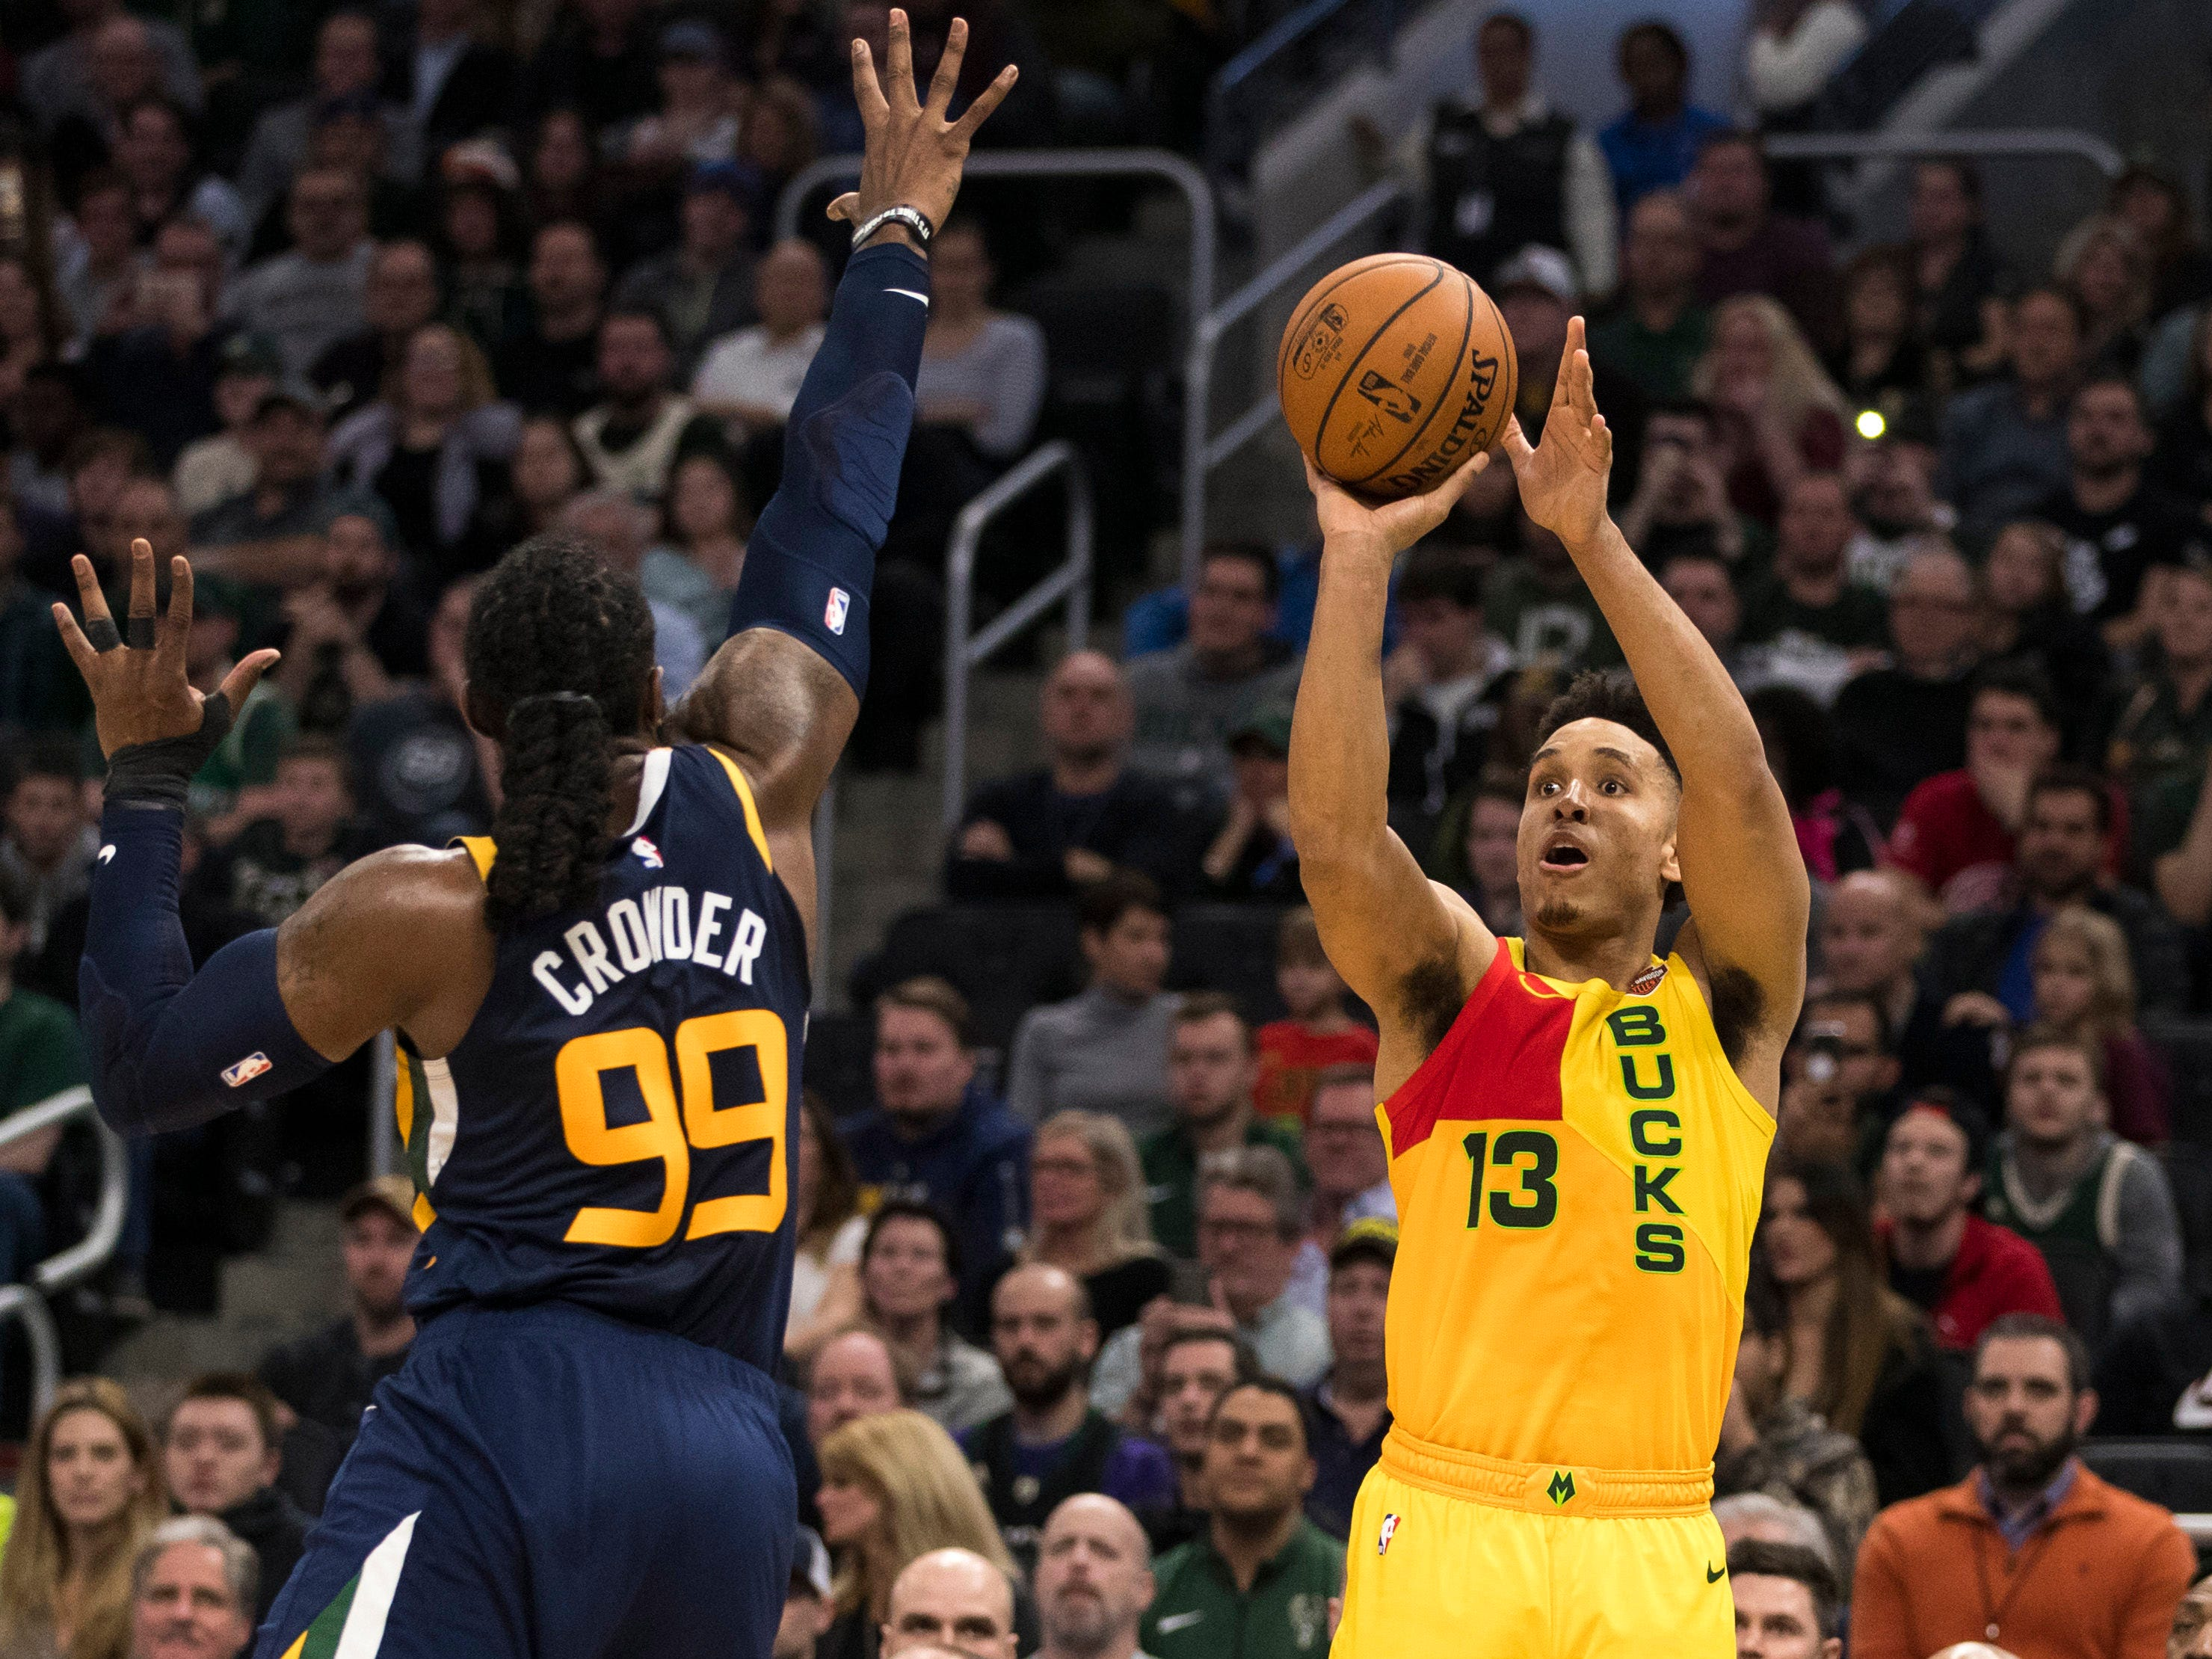 Bucks guard Malcolm Brogdon  launches a three-pointer over former Marquette standout Jae Crowder of the Jazz during the fourth quarter Monday.